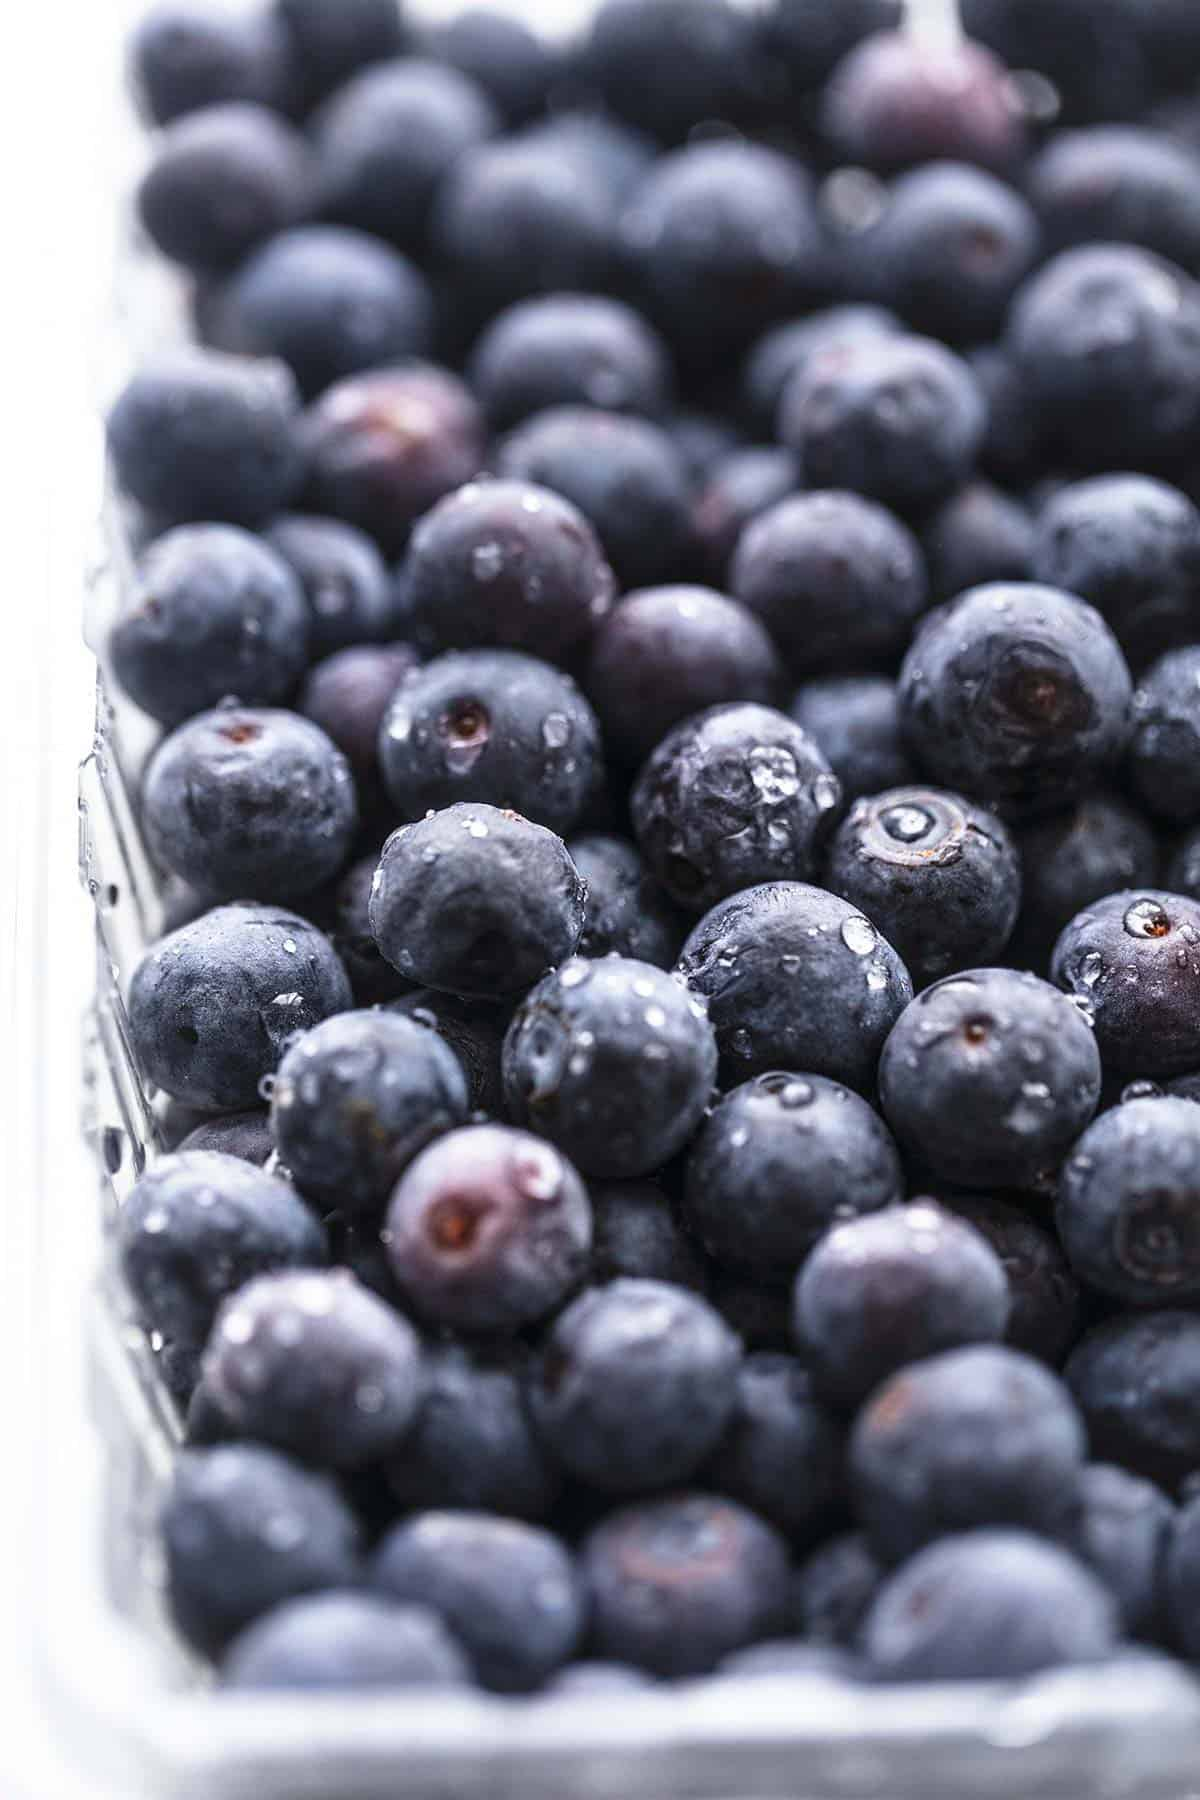 fresh blueberries up close